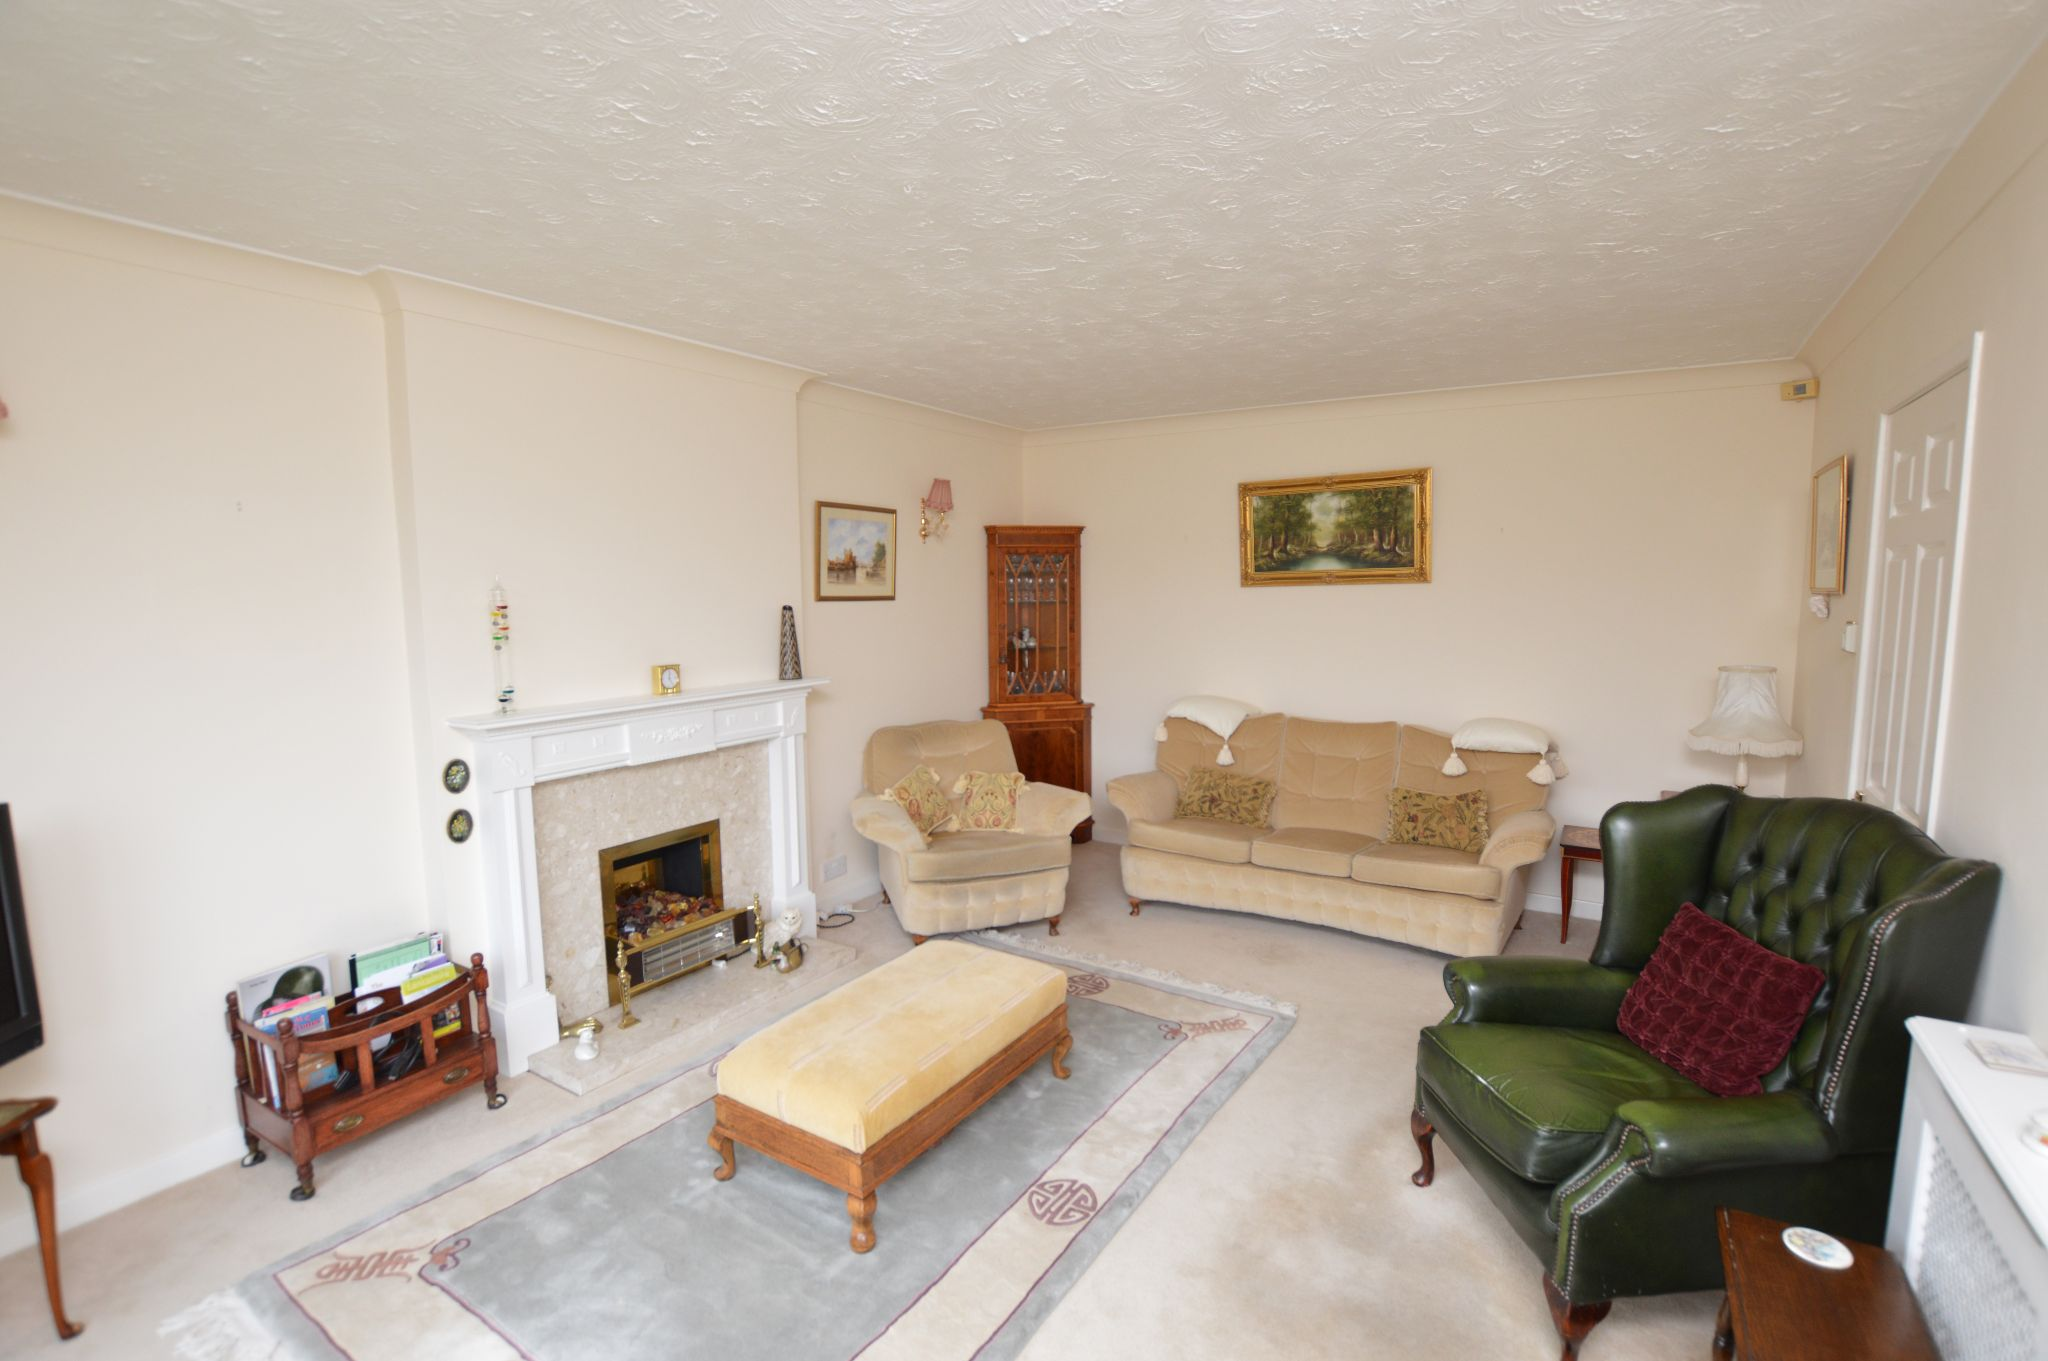 4 bedroom detached house For Sale in Abergele - Lounge View 3